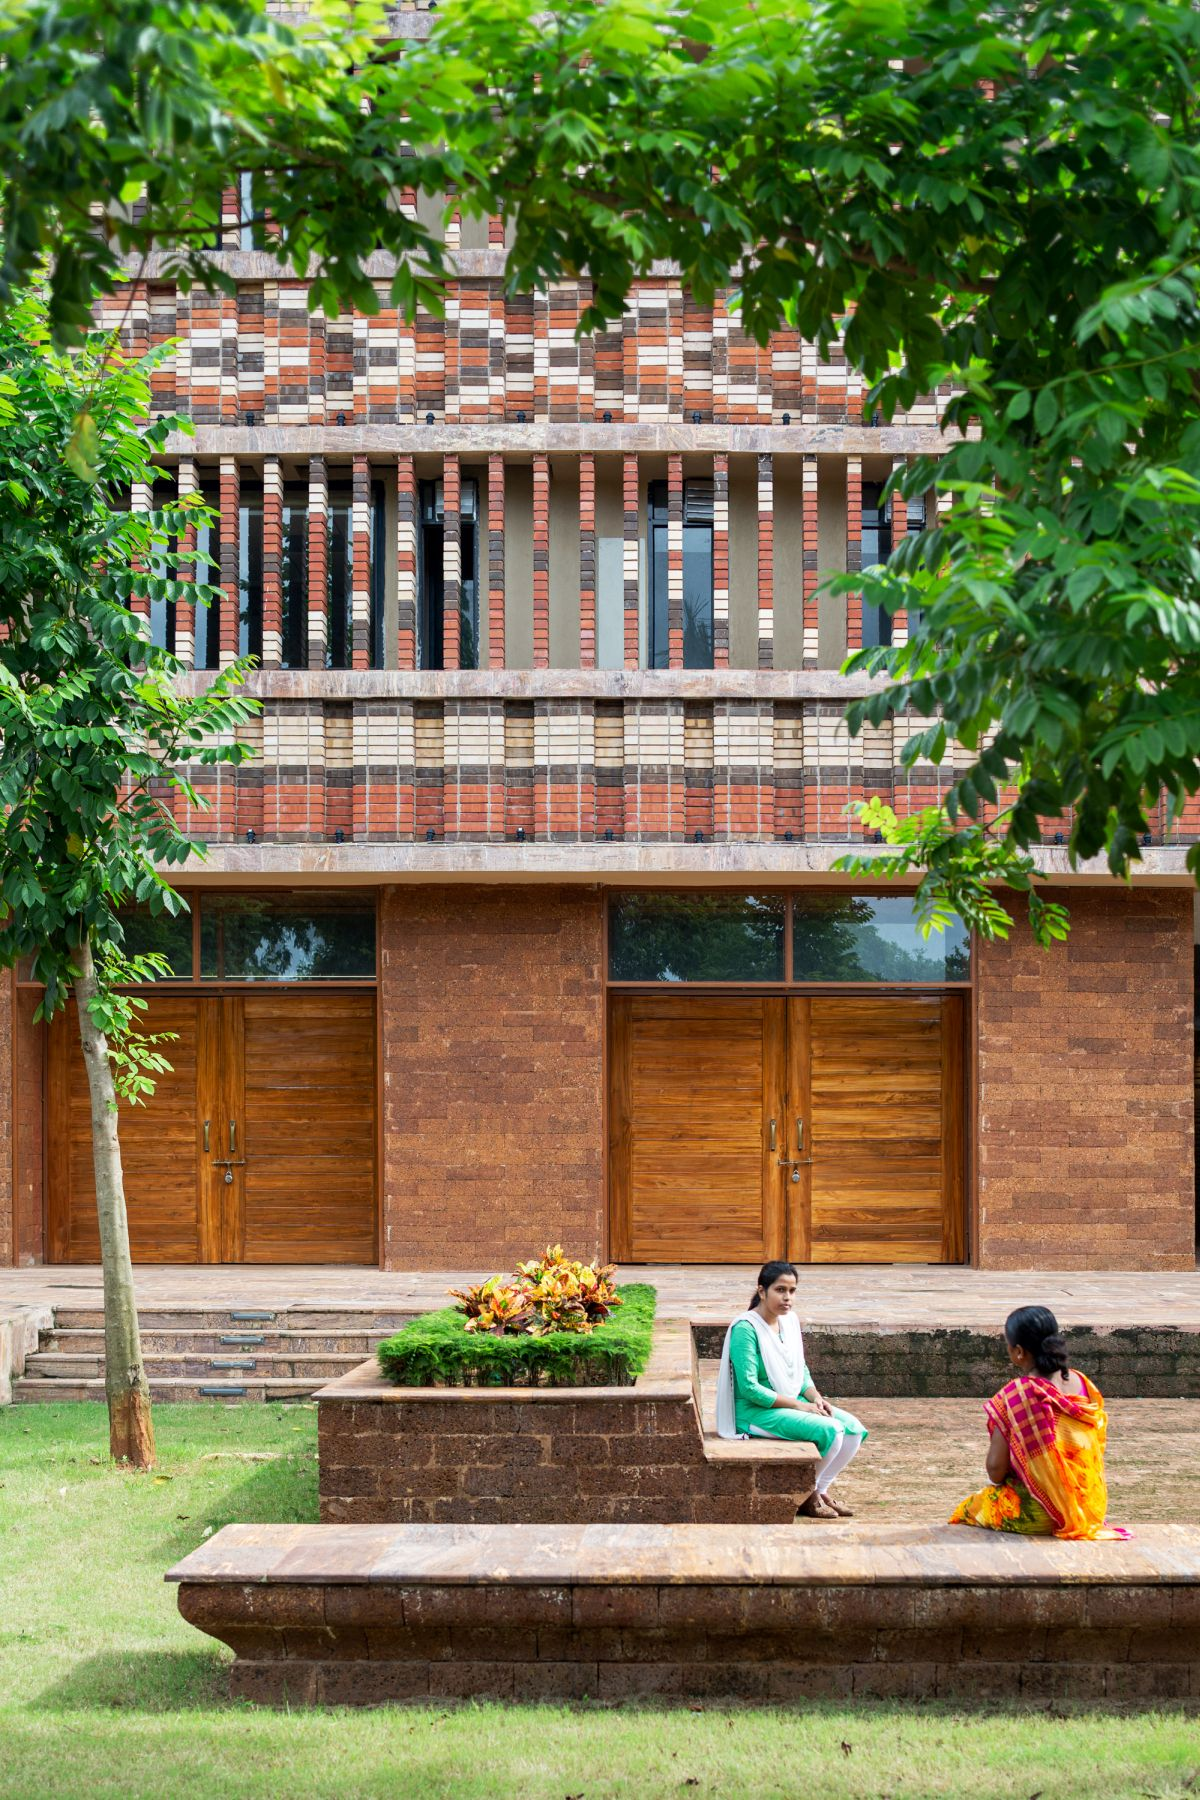 Krushi Bhawan   150 Local Artisans Come Together to Craft a Civic Building in India, by Studio Lotus 6